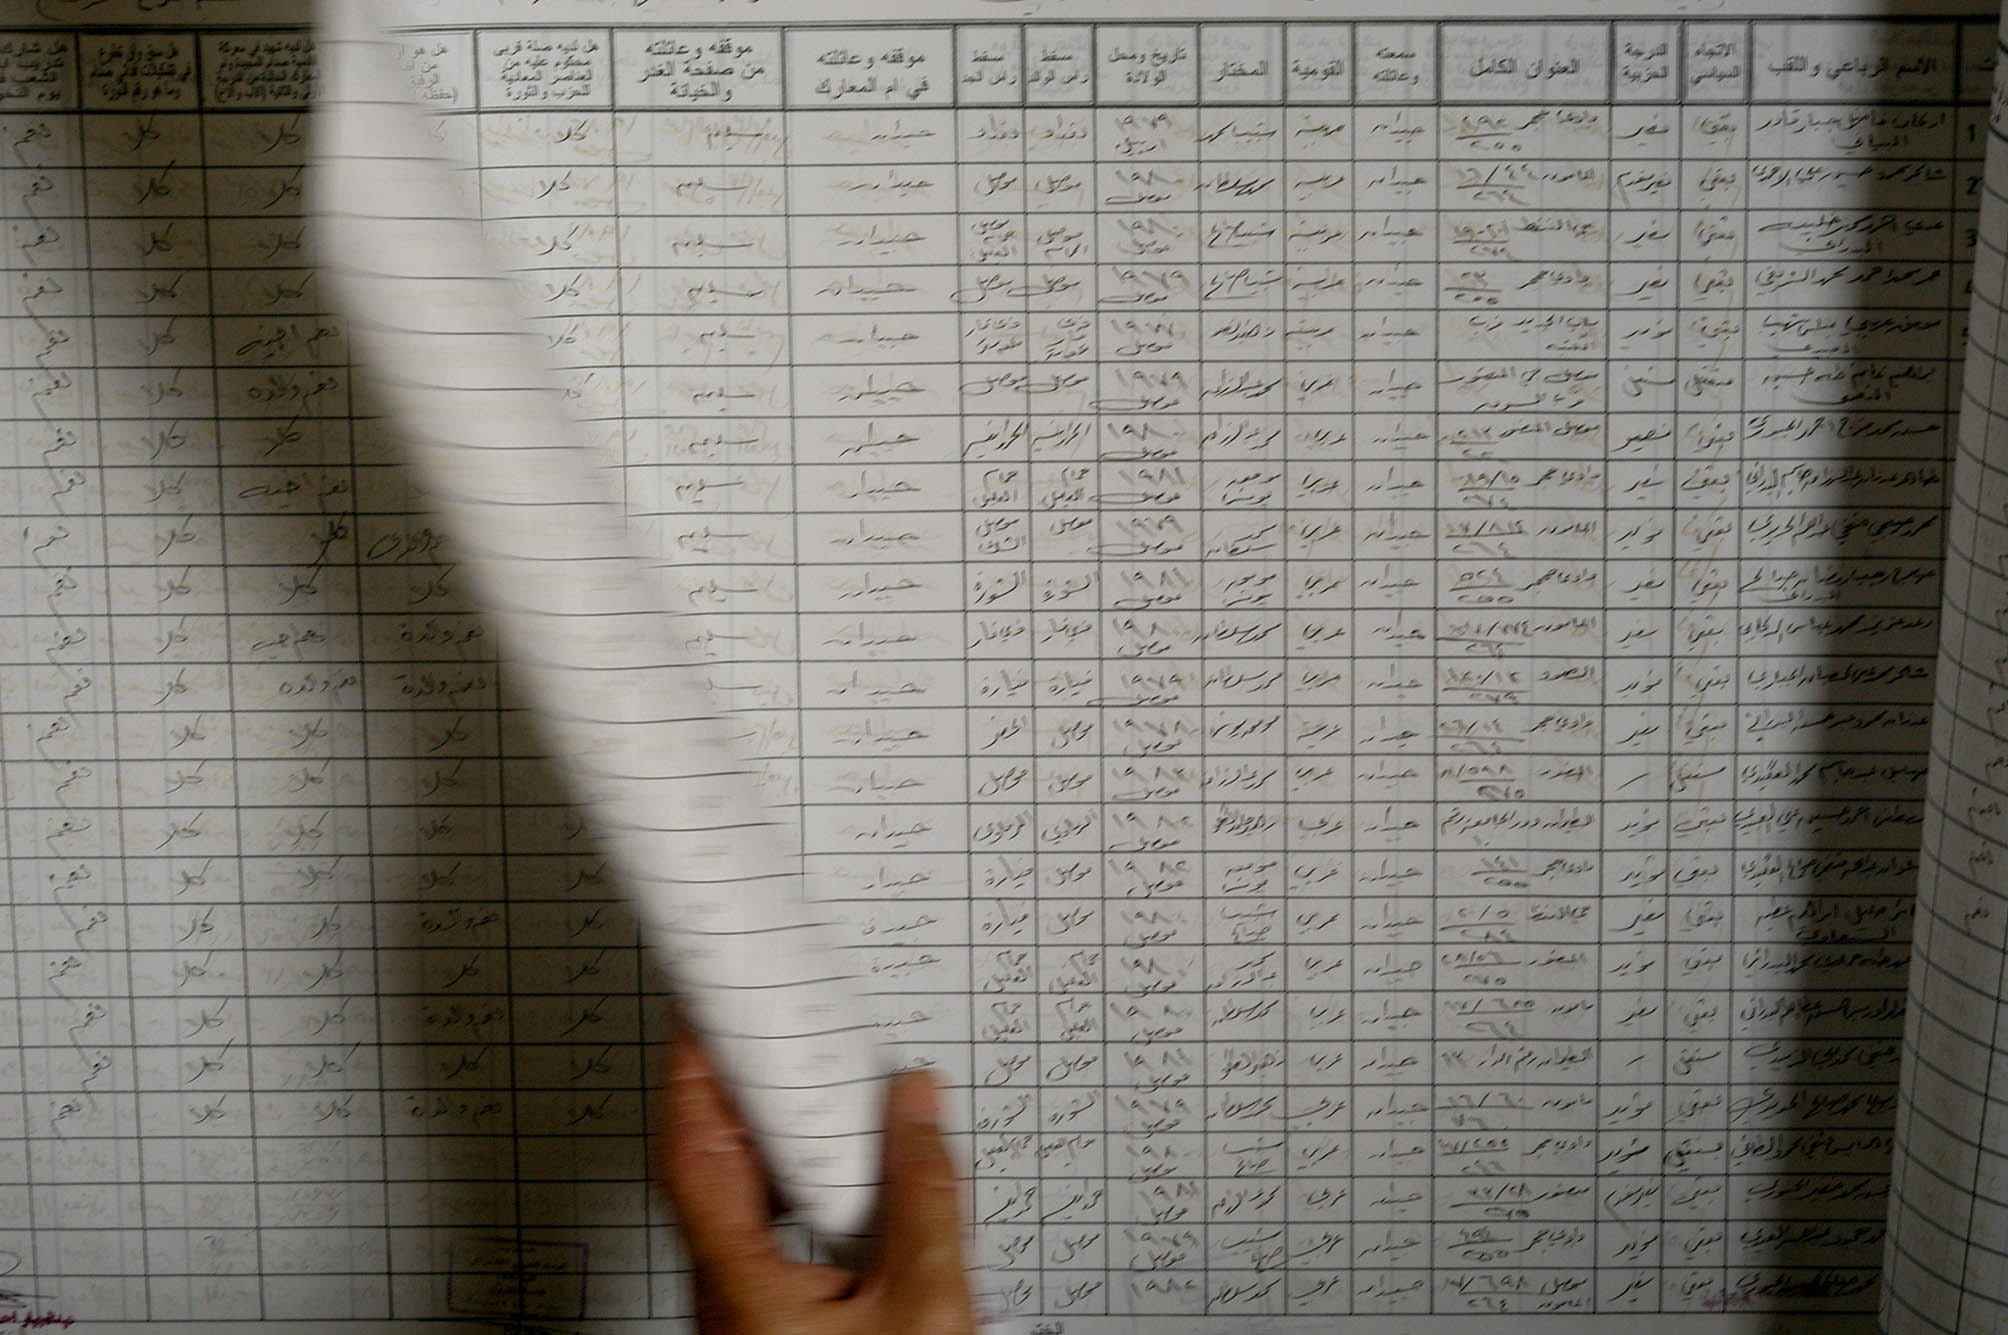 Kanan Makiya and his assistant, Hassan, of the Iraq Memory Foundation review a file created by the Arab Socialist Ba'ath Party documenting torture, executions, and mass graves in Baghdad, Iraq on Oct. 19, 2003. Iraqi citizens and occupying forces recovered the files, which were created by Ba'ath party officials prior to the U.S. invasion.